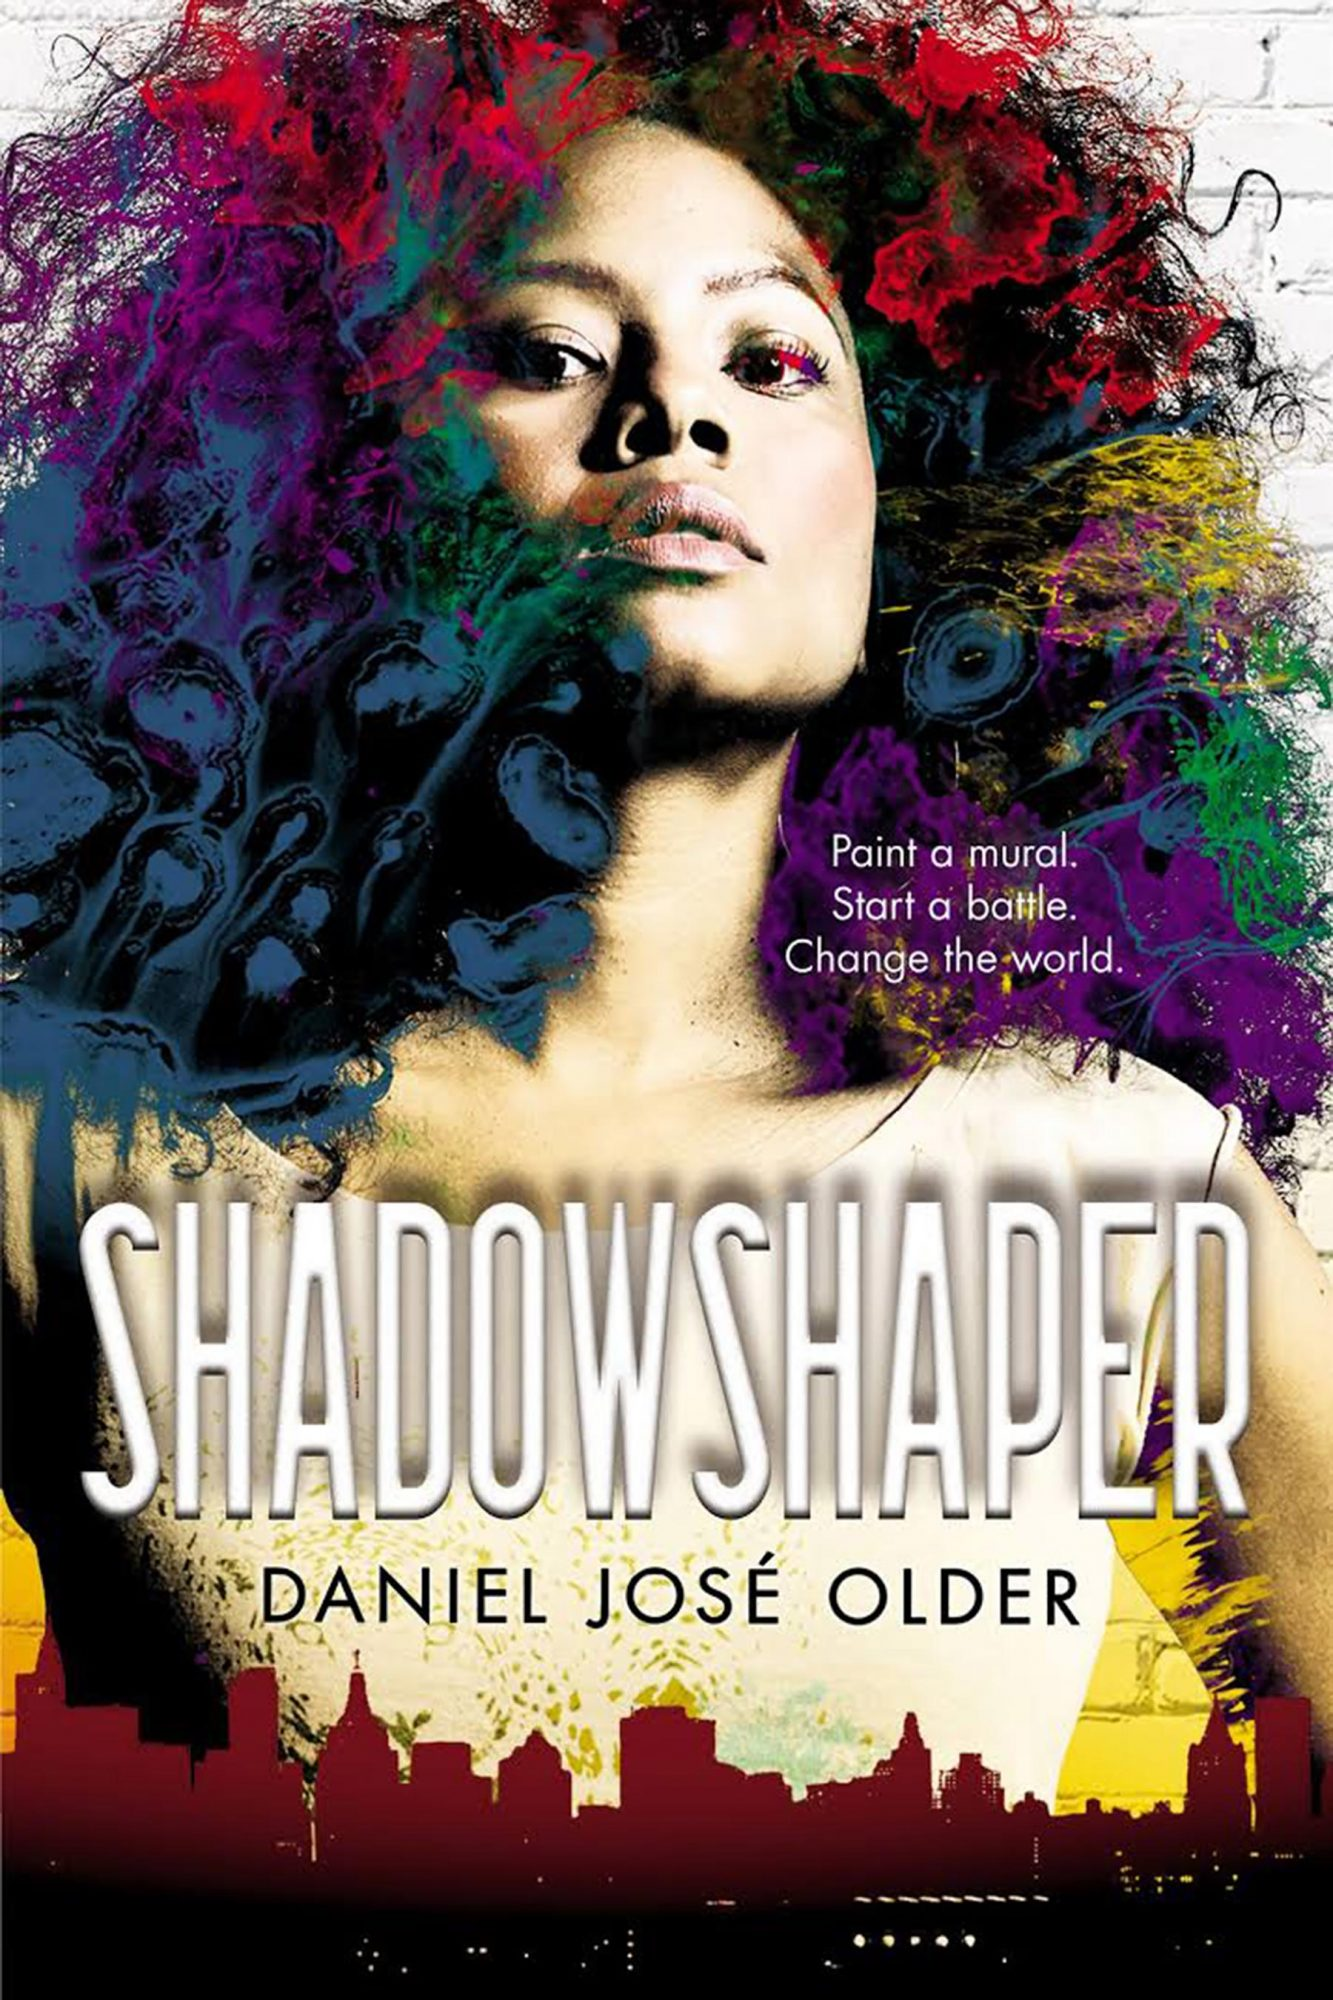 Shadowshaper by Daniel Jose Older CR: Scholastic, Inc.